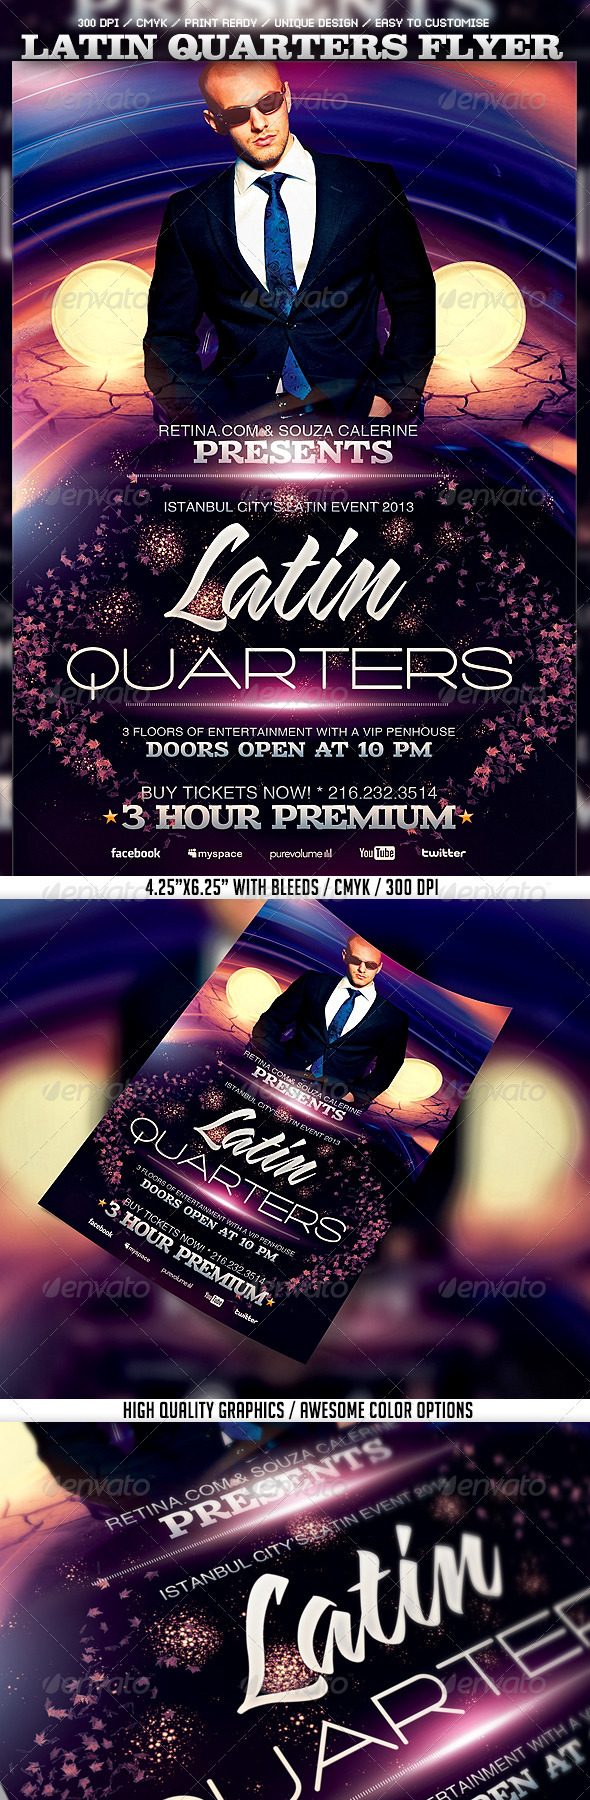 Latin Quarters Flyer Template - Clubs & Parties Events